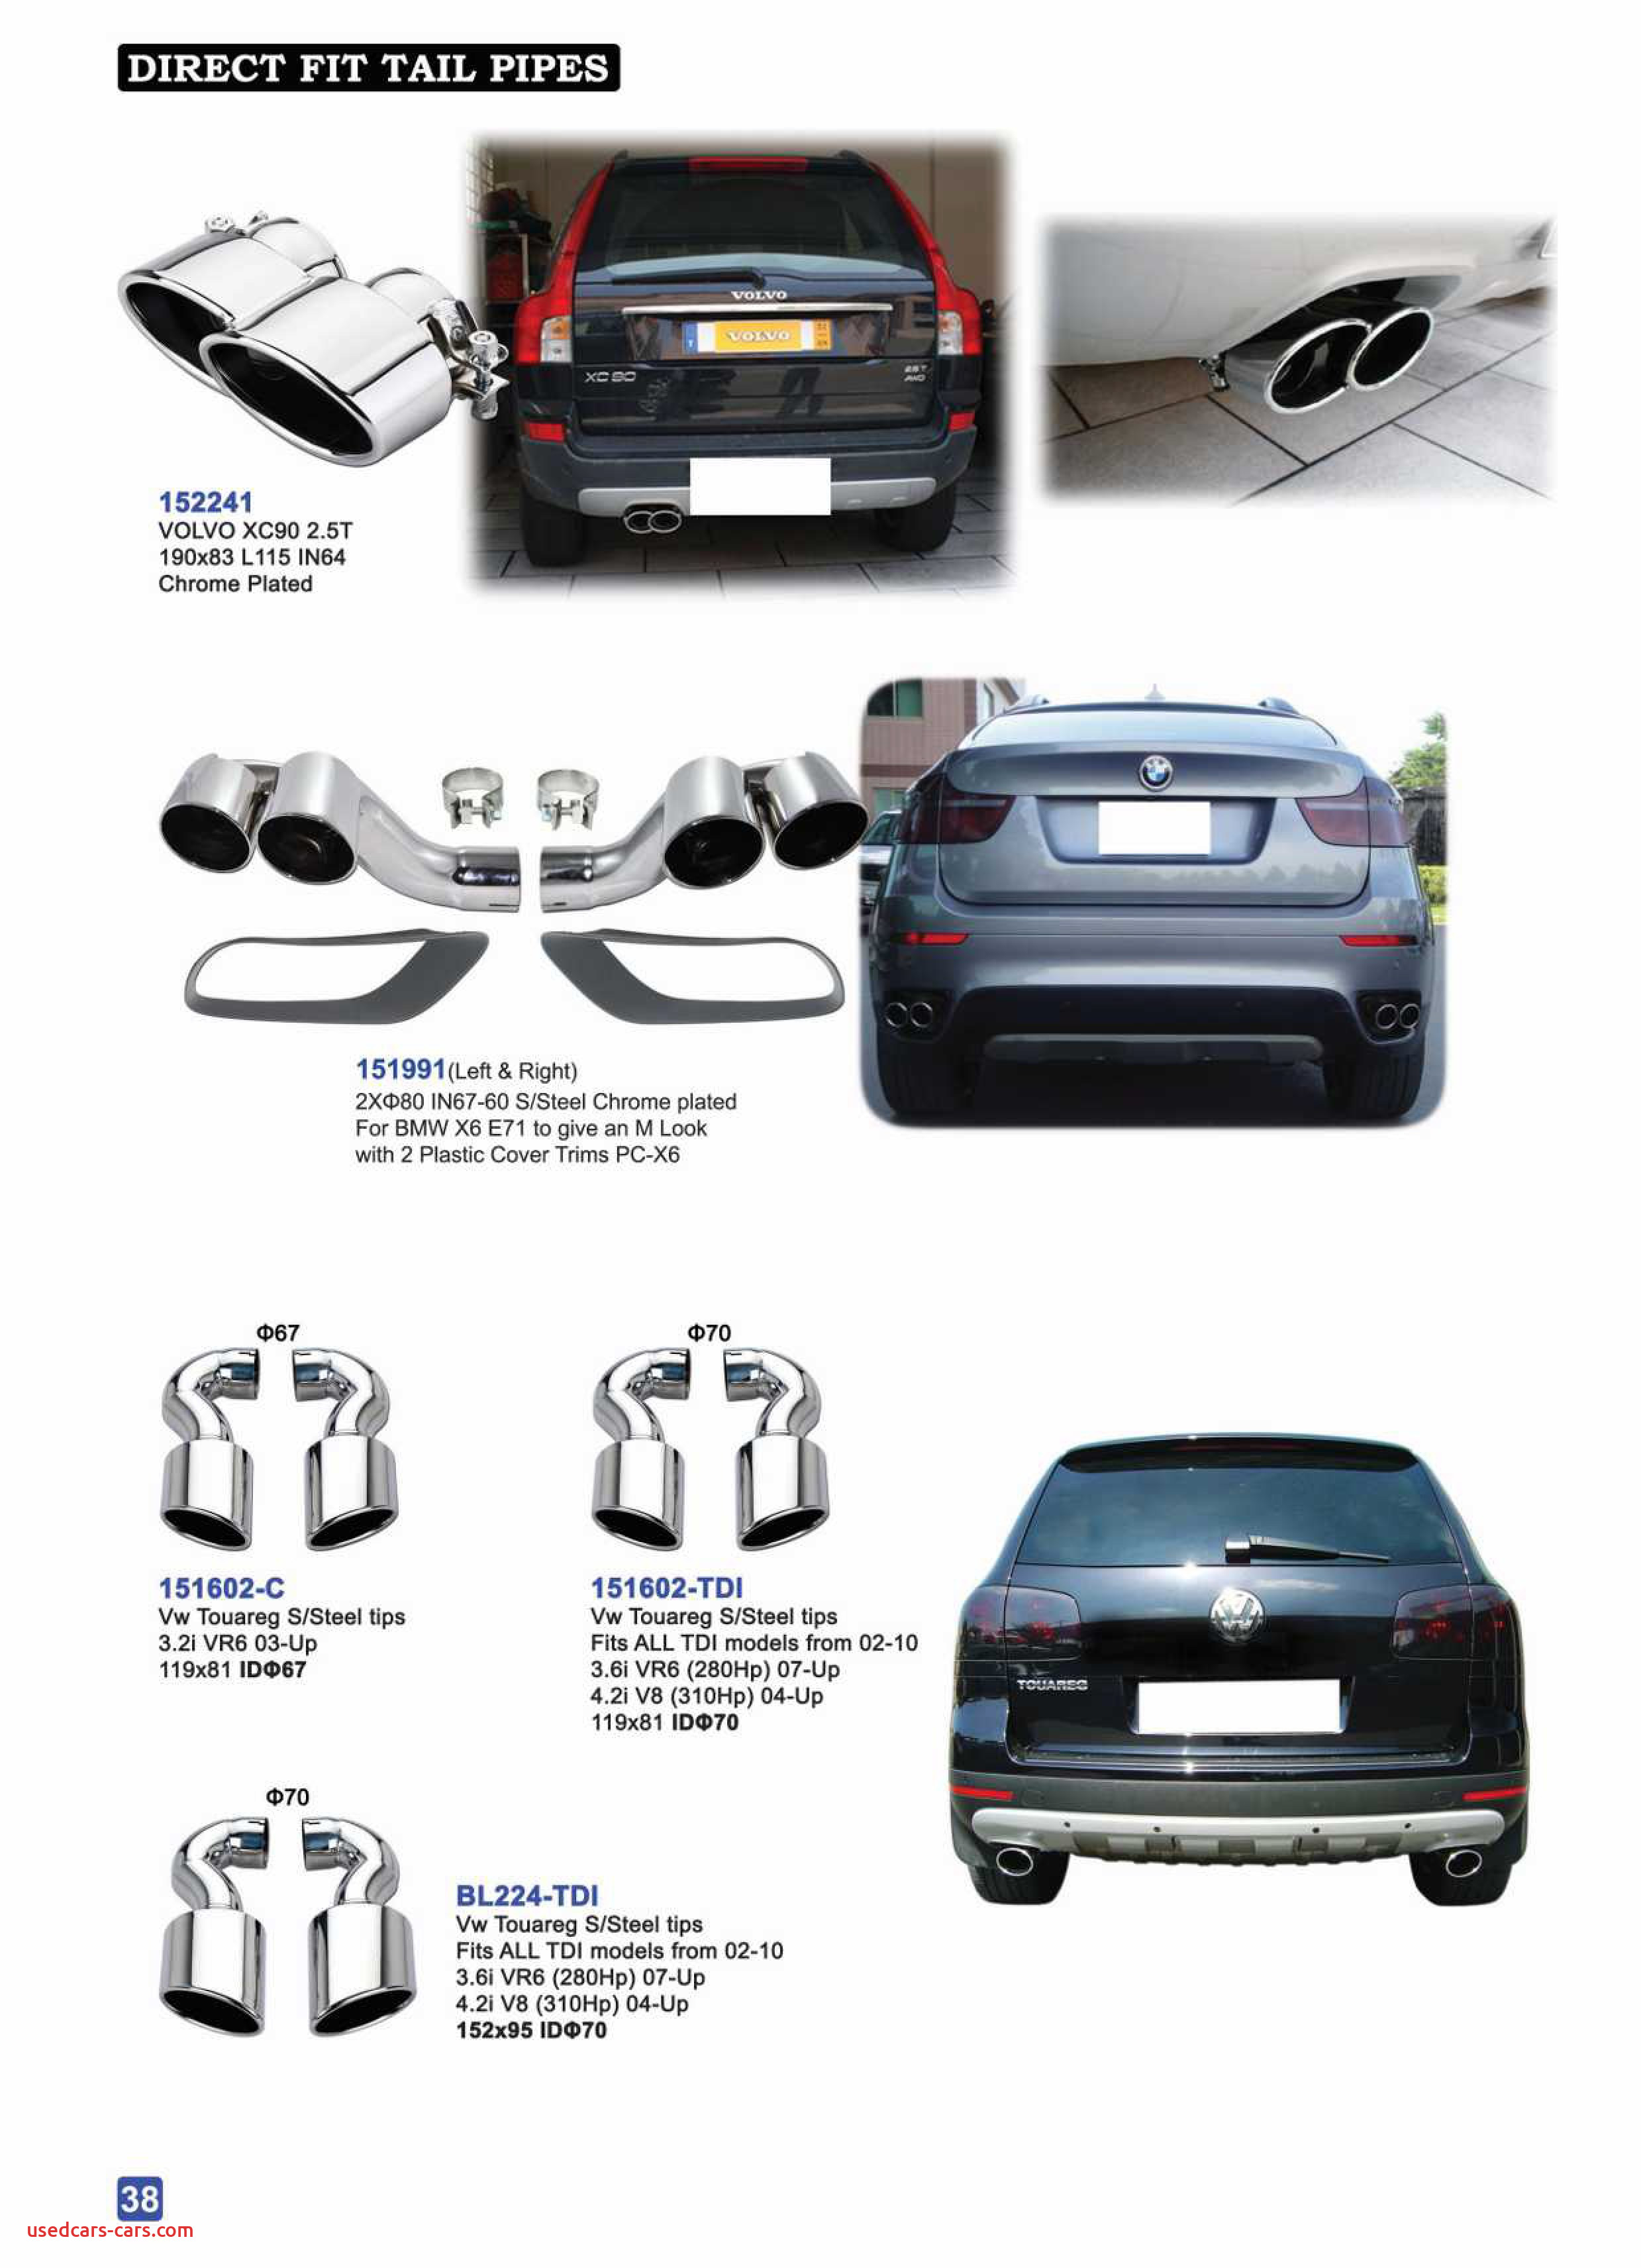 Cost Of 2020 ford Escape Awesome Details About Exhaust Pipes Tips for Bmw X6 E71 3 0d 5d 5i 4